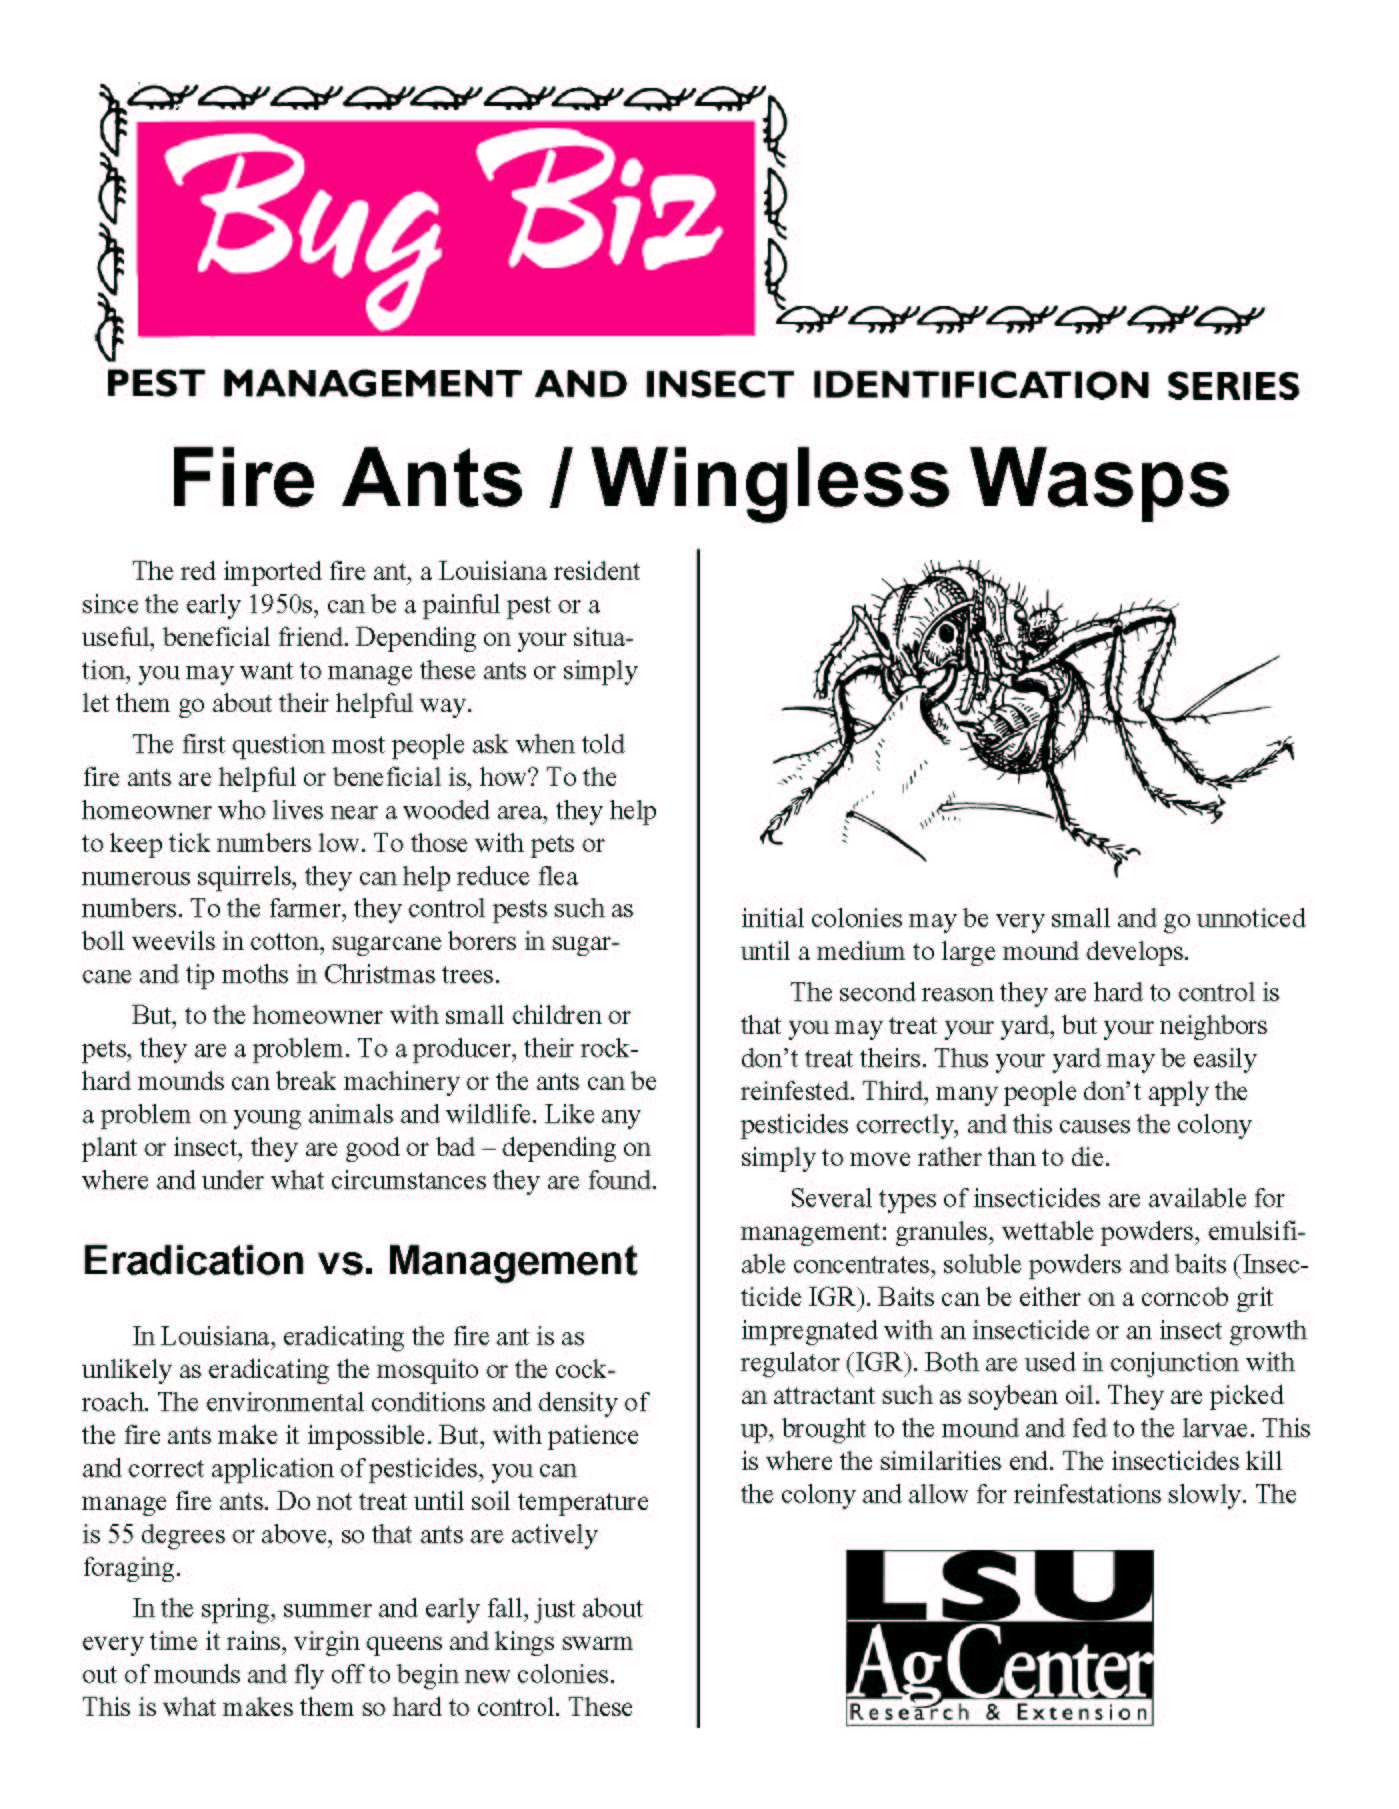 Bug Biz:  Fire Ants